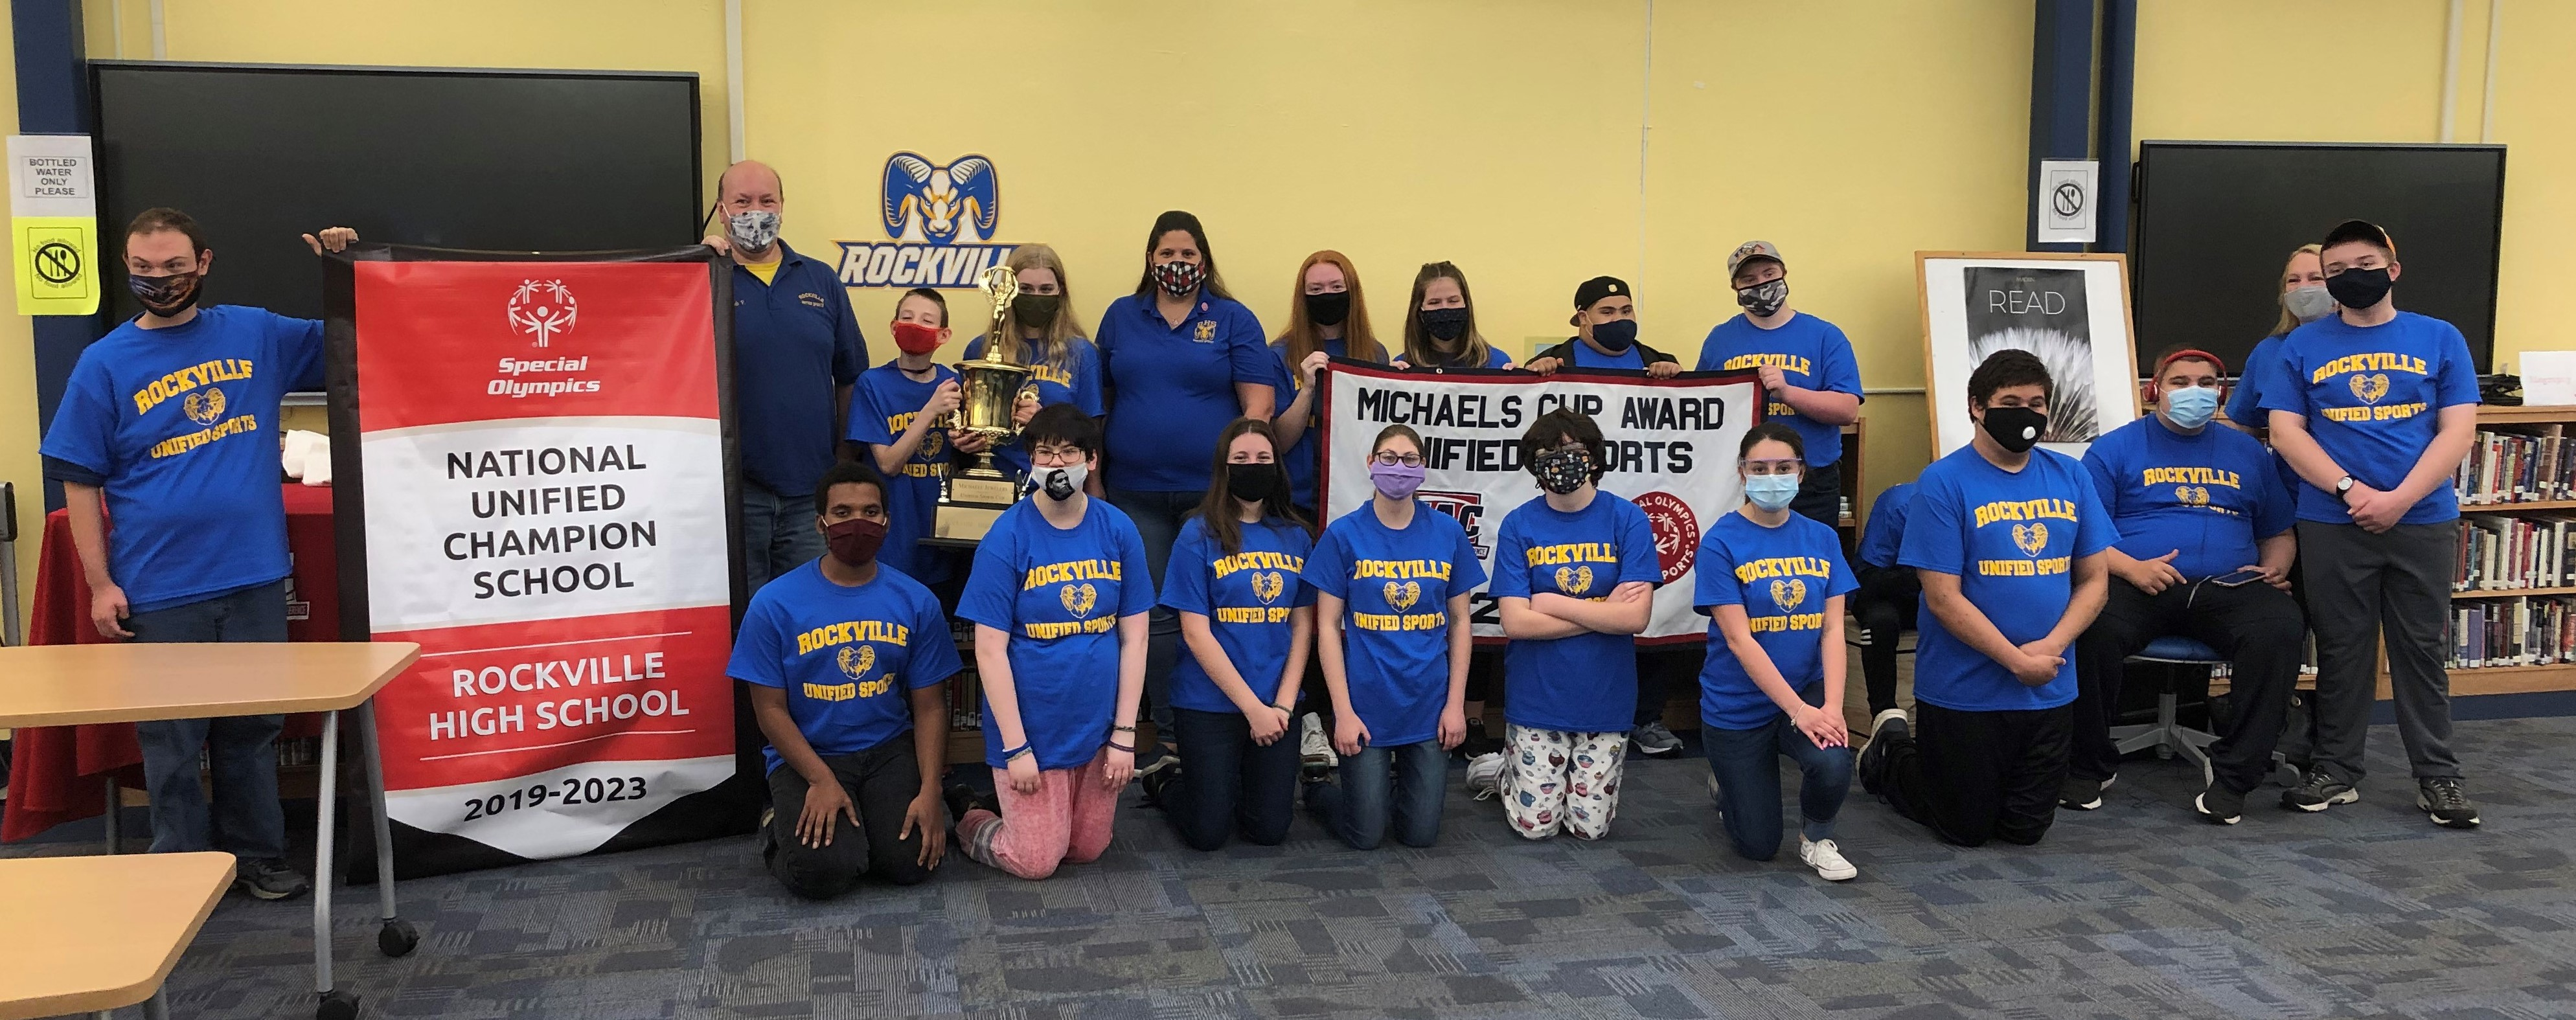 Rockville High's Unified Sports team with the Michaels' Cup and National Banner..